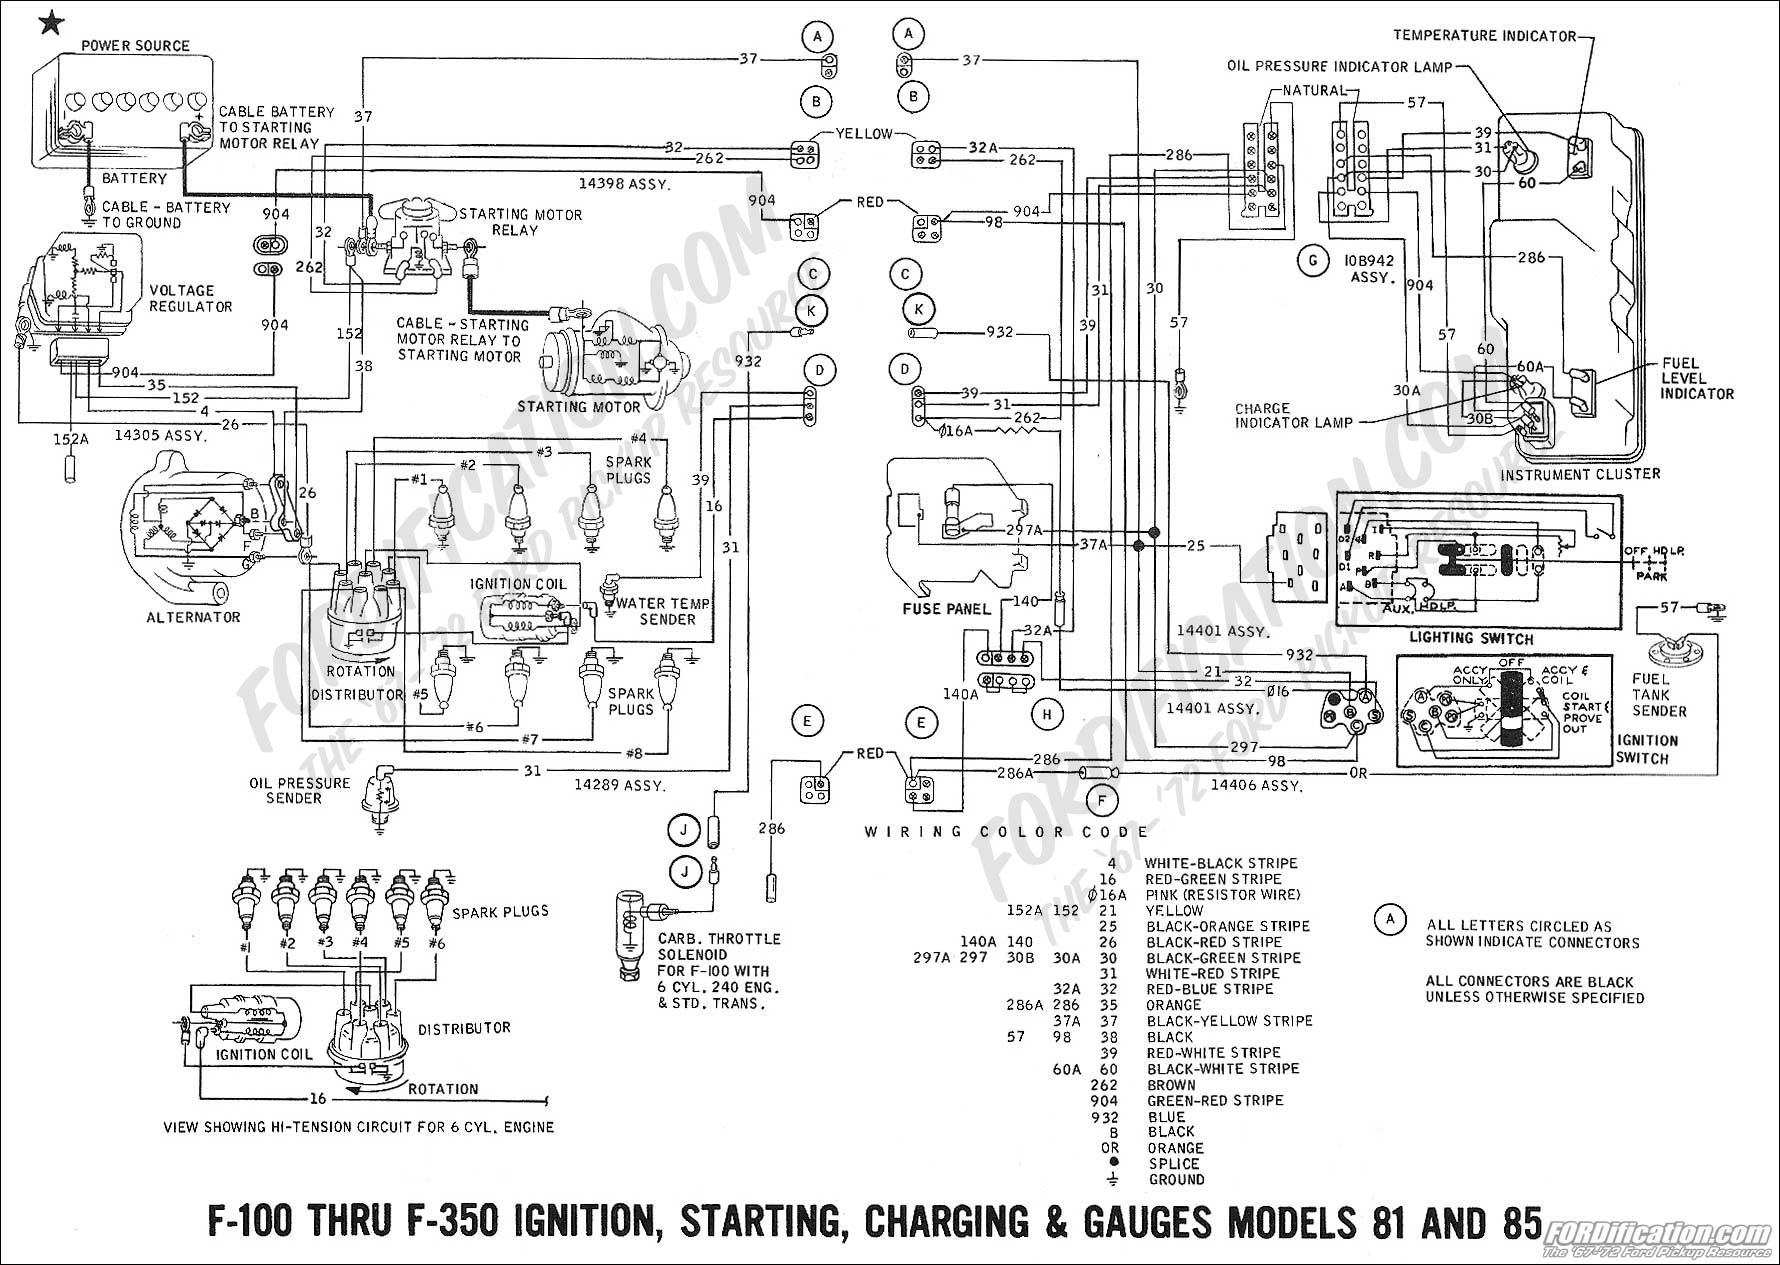 hight resolution of ford truck ignition wiring wiring diagram explained 67 mustang coupe wiring 69 mustang turn signal wiring diagram